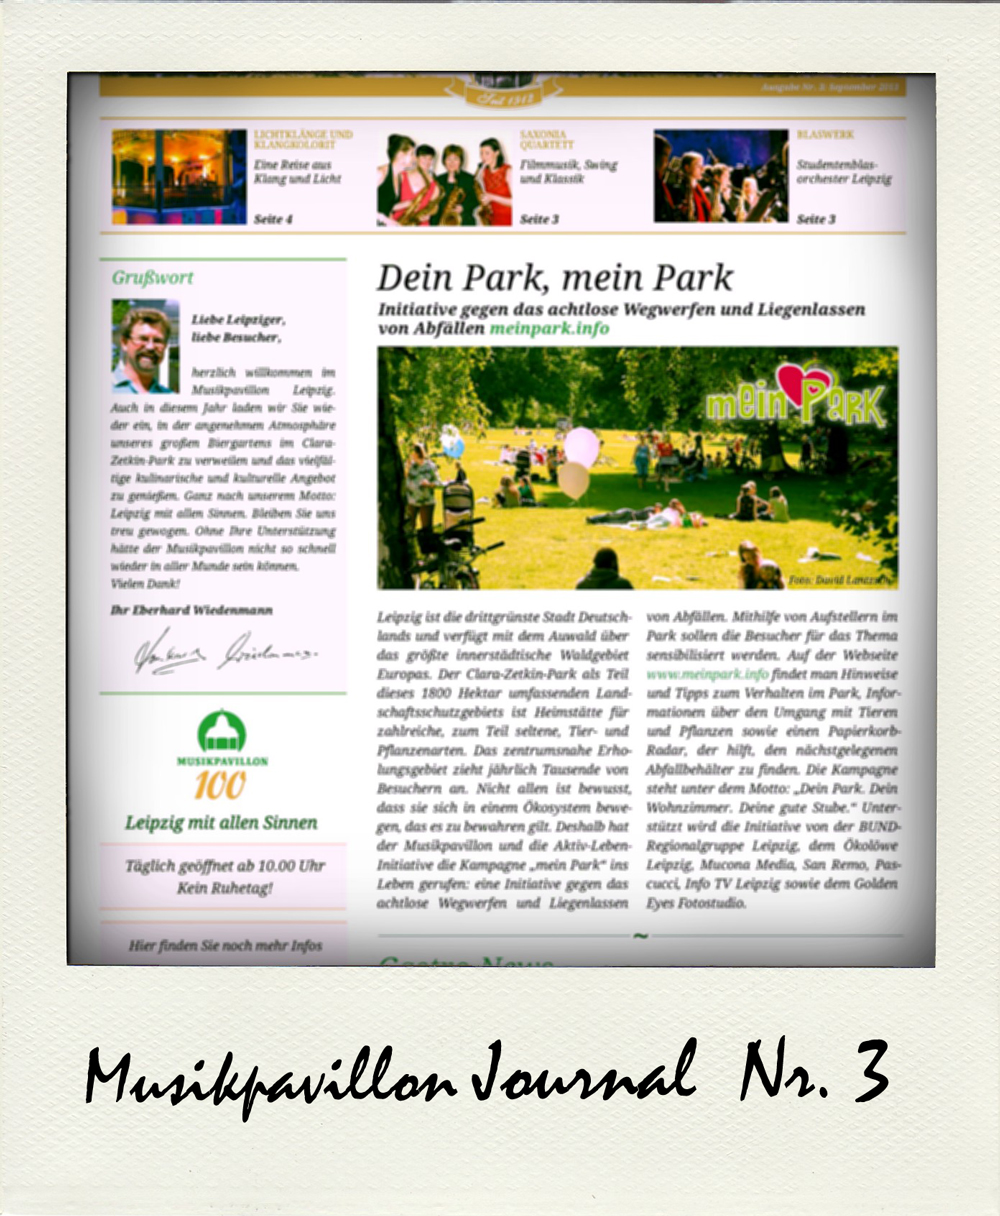 Musikpavillon Journal Ausgabe 3